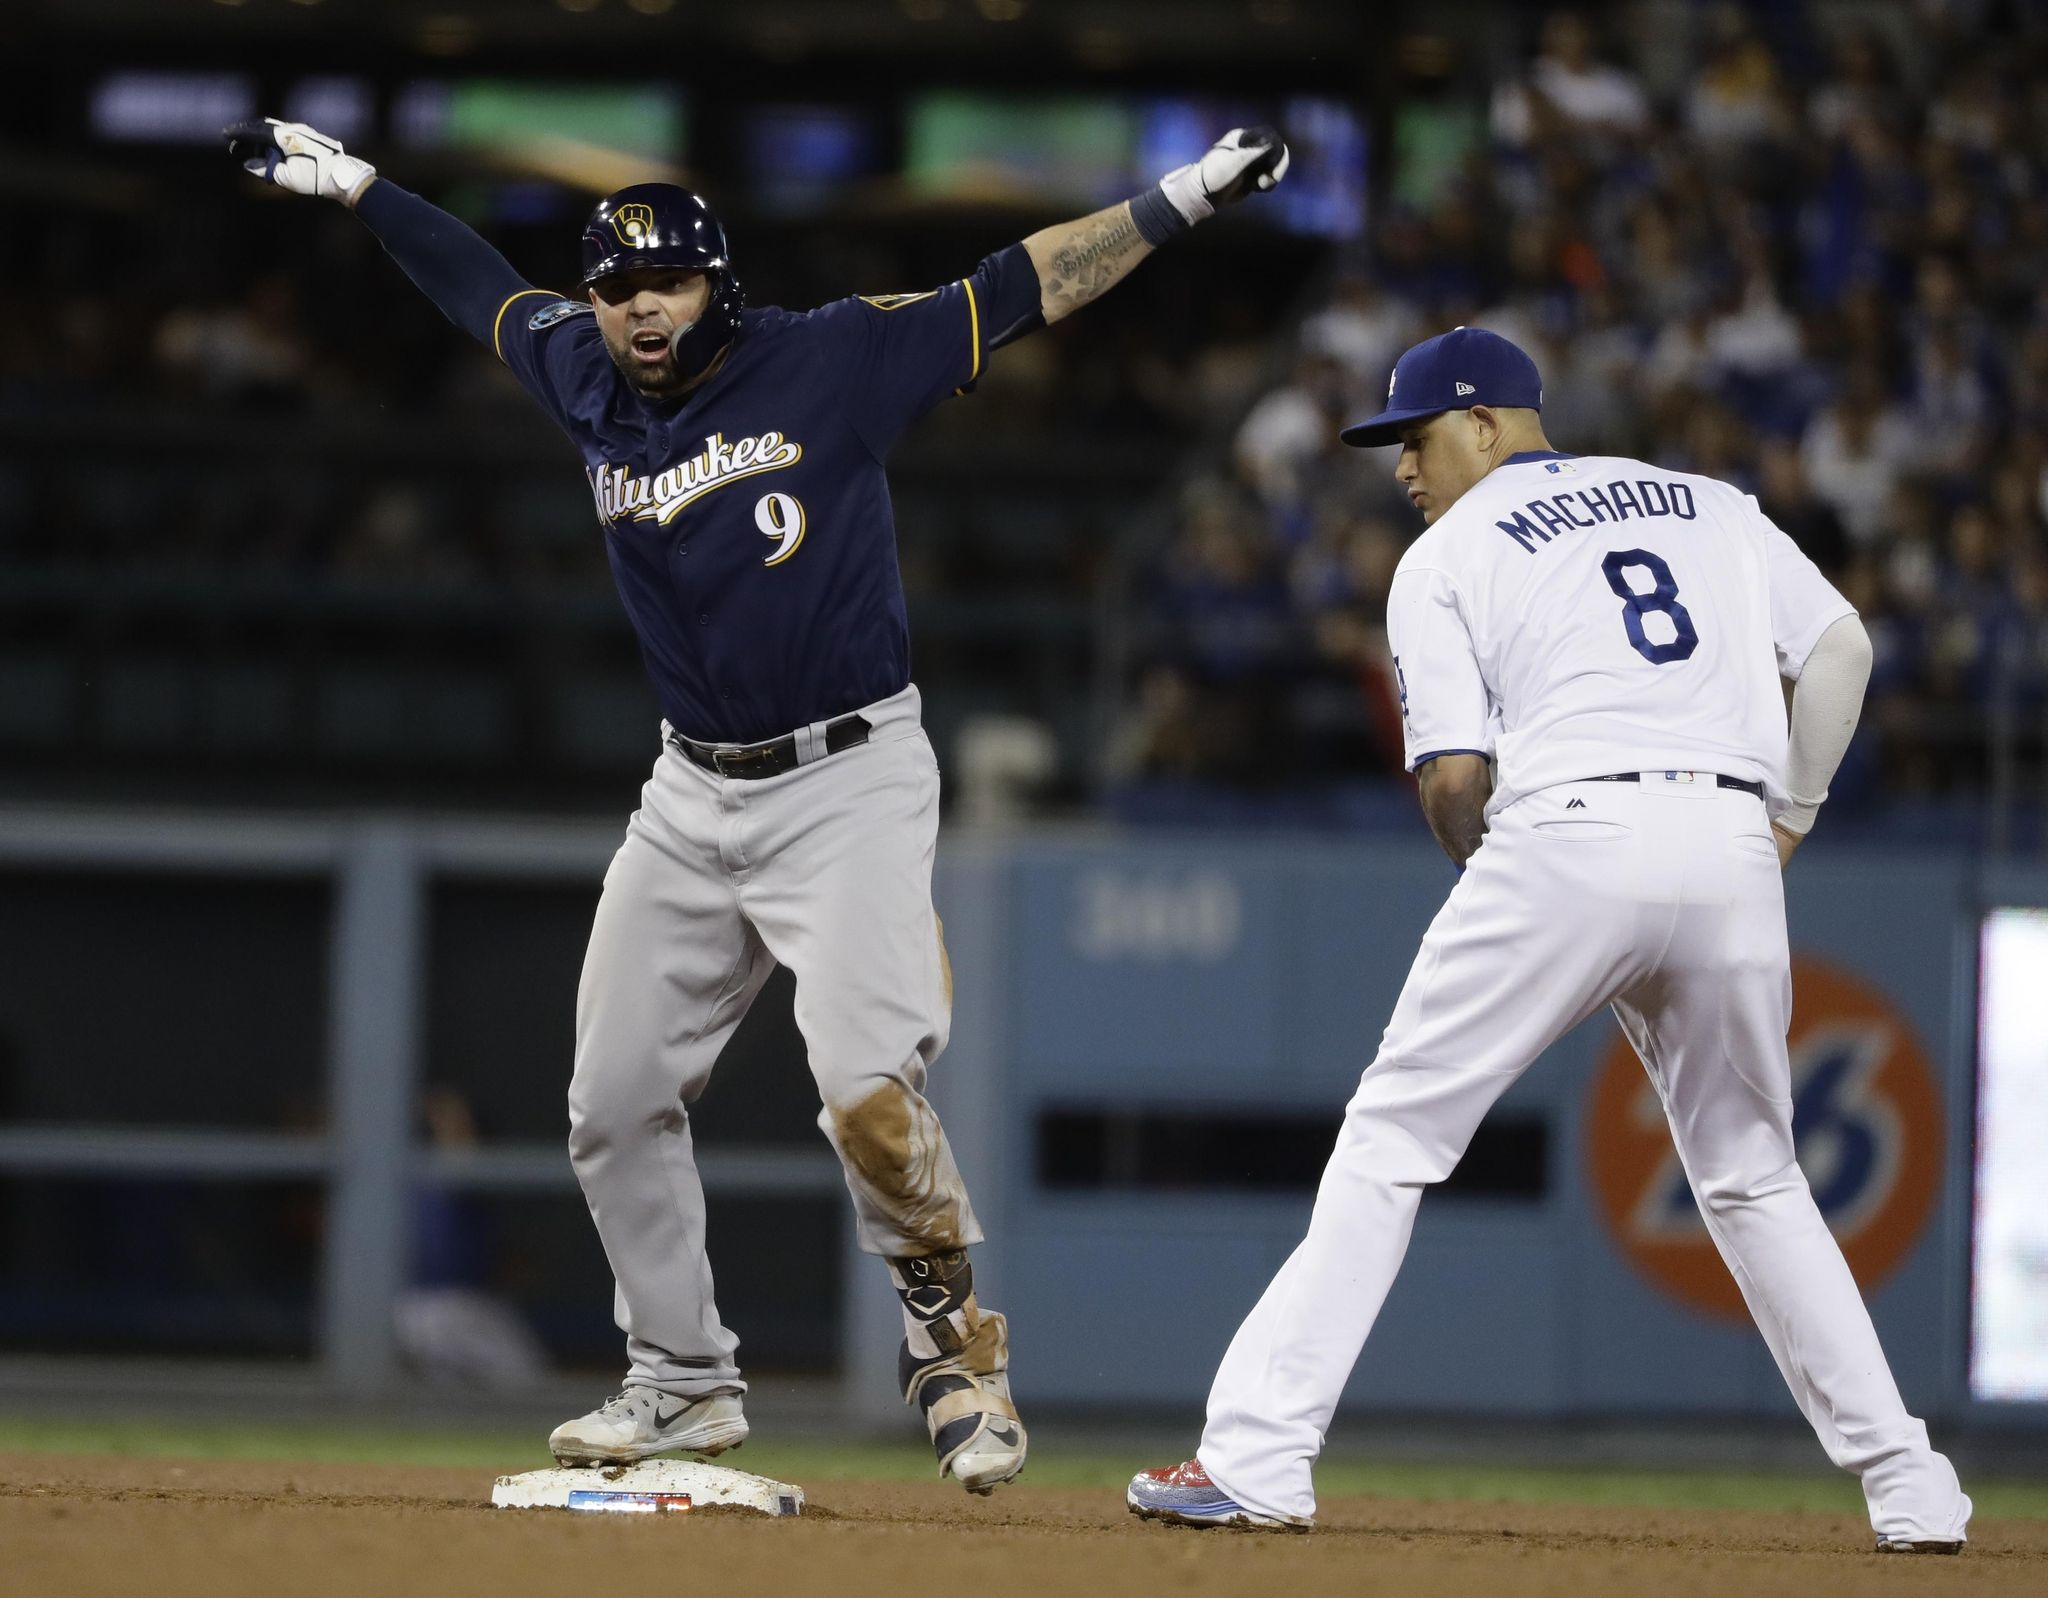 Nlcs_brewers_dodgers_baseball_36819_s2048x1598